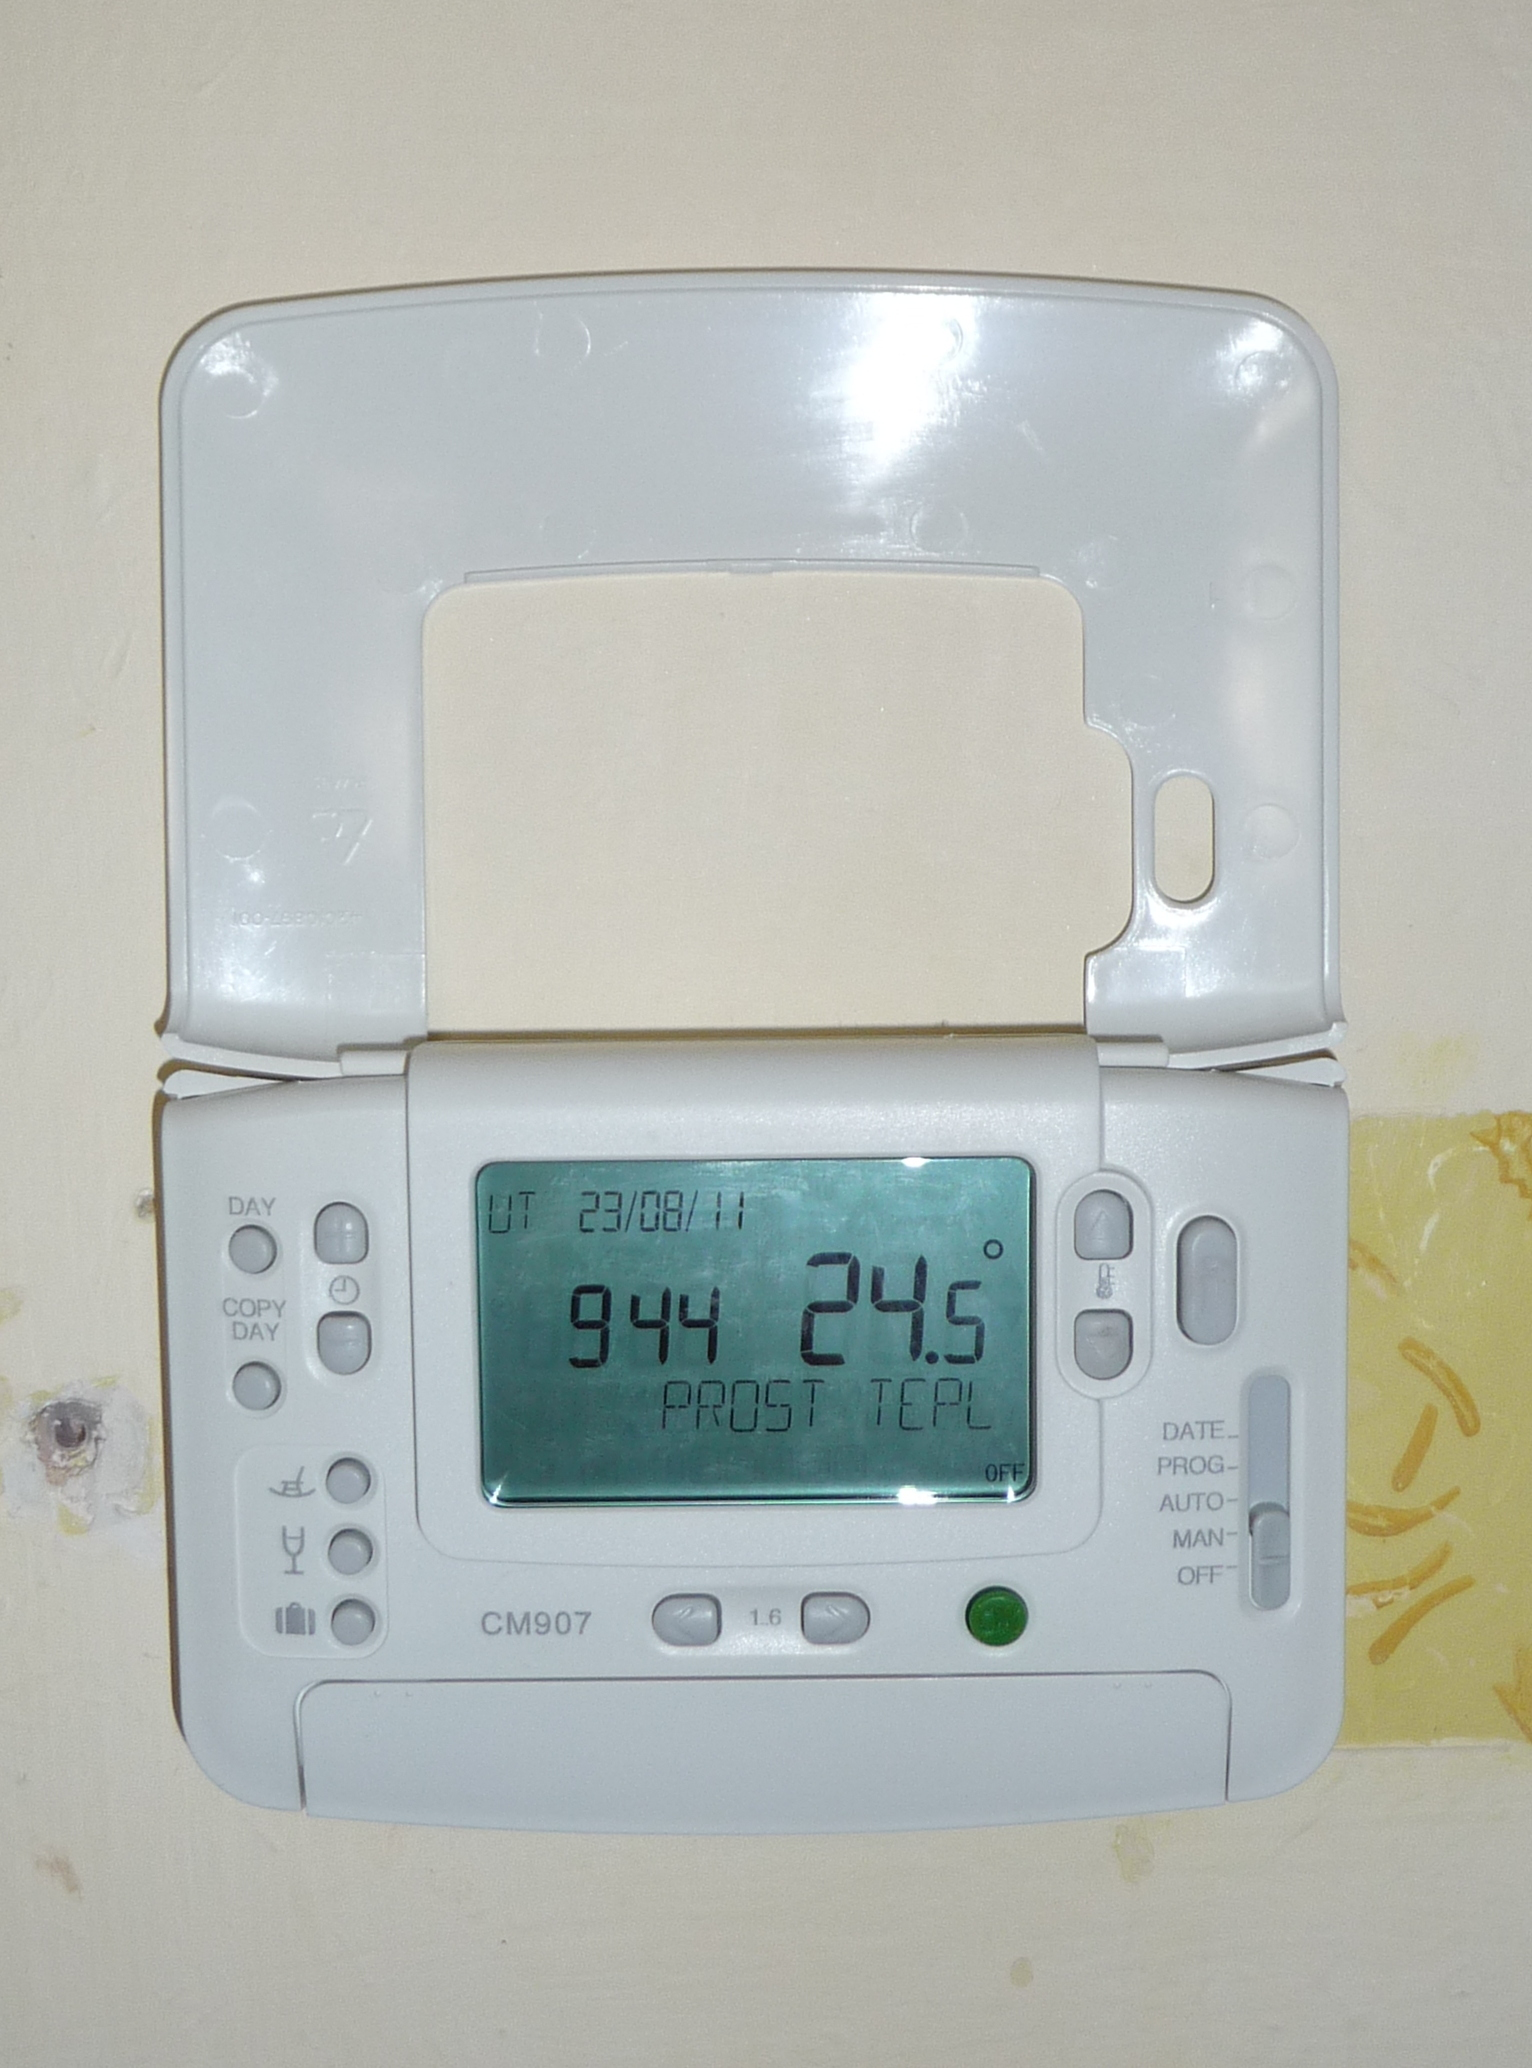 Digital Thermostat Unit That Can Adjust Temperature Control By Room